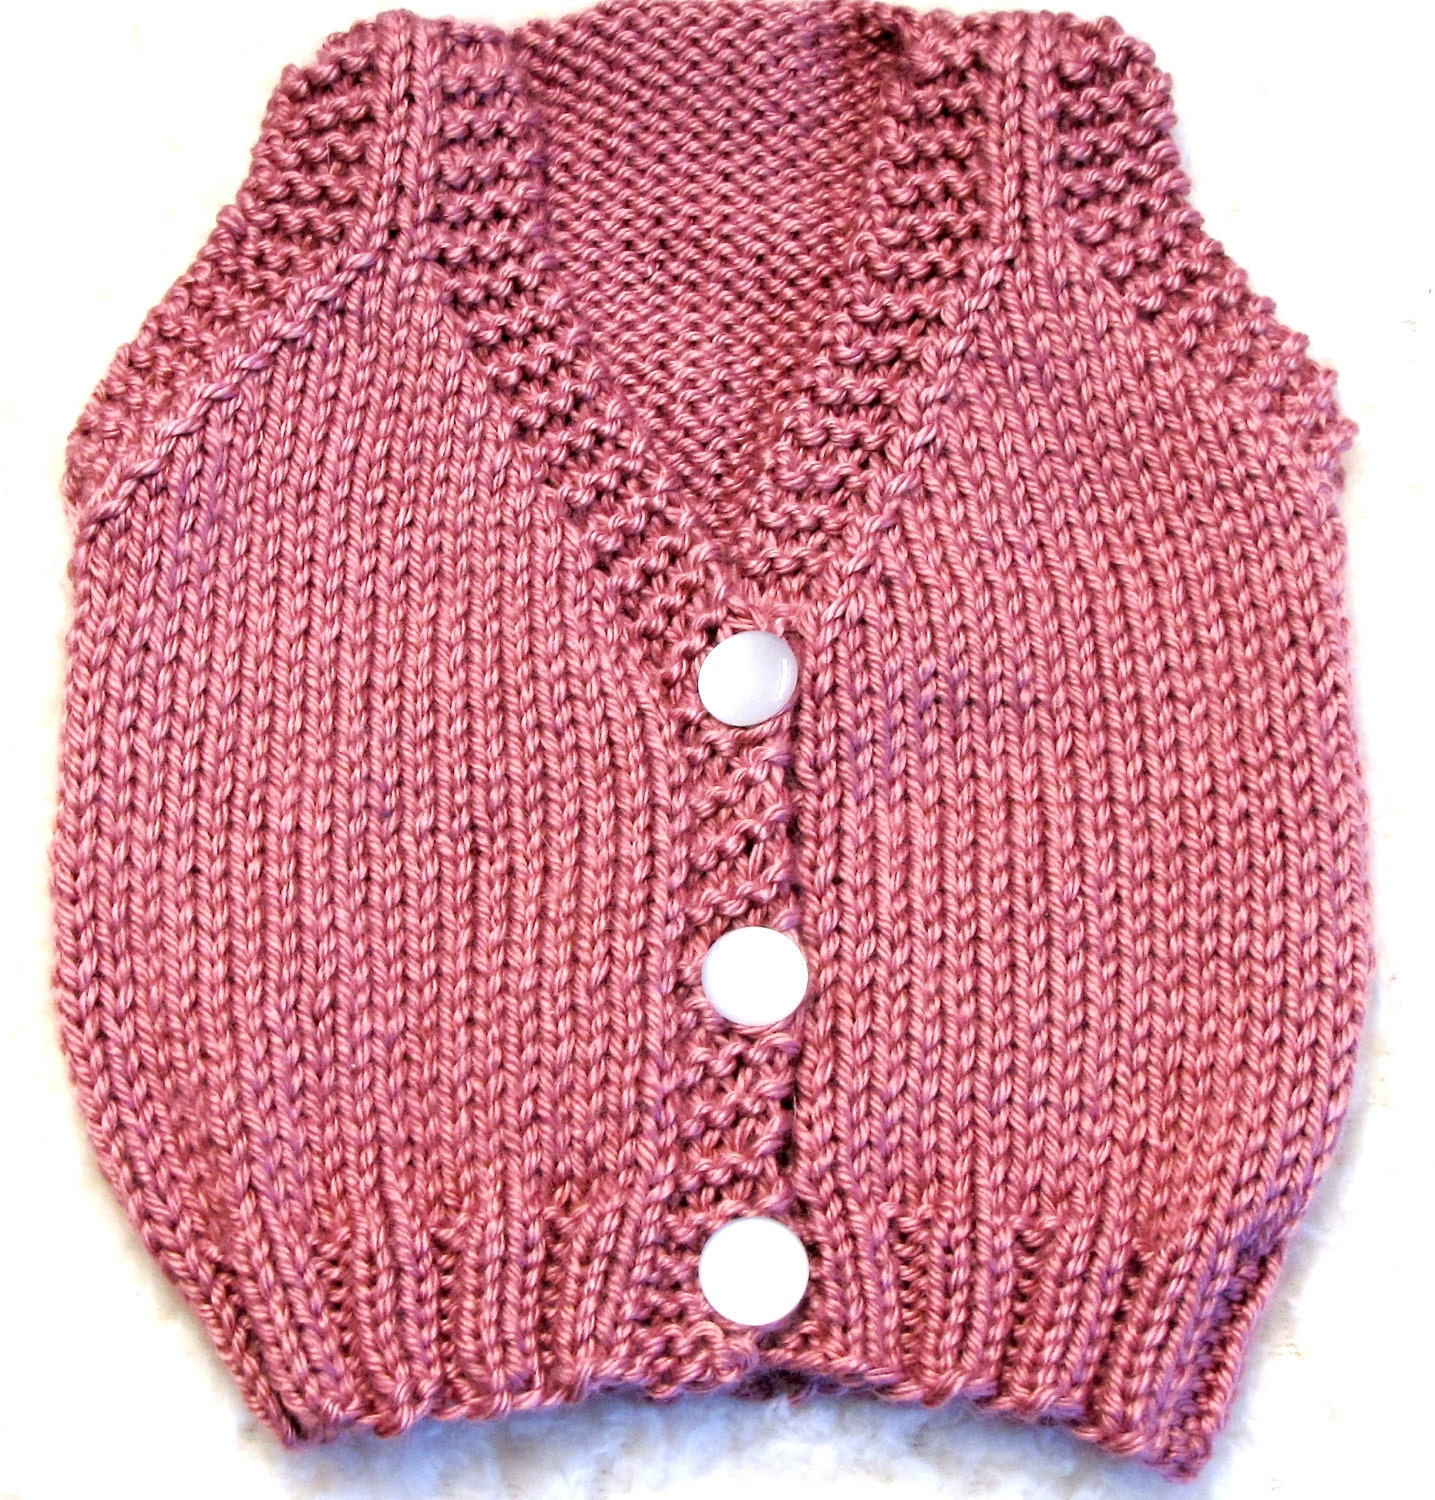 Knitted Baby Vest Patterns Free : Baby Vest Knitting Pattern SMALL PDF